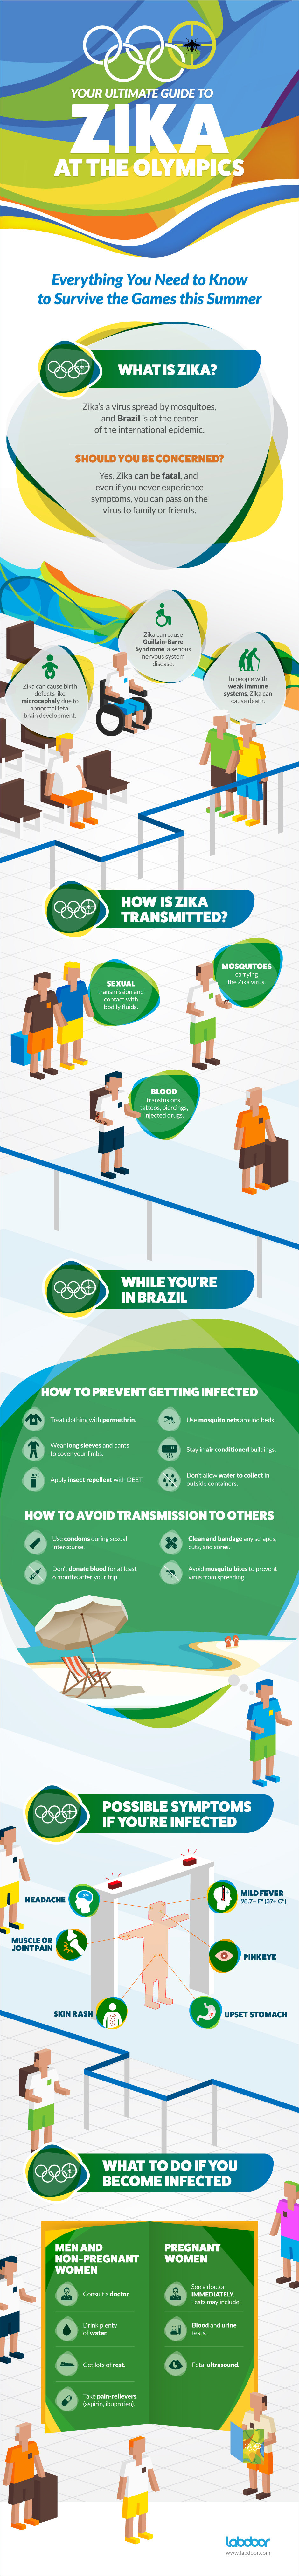 Your Ultimate Guide to Zika at the Olympics